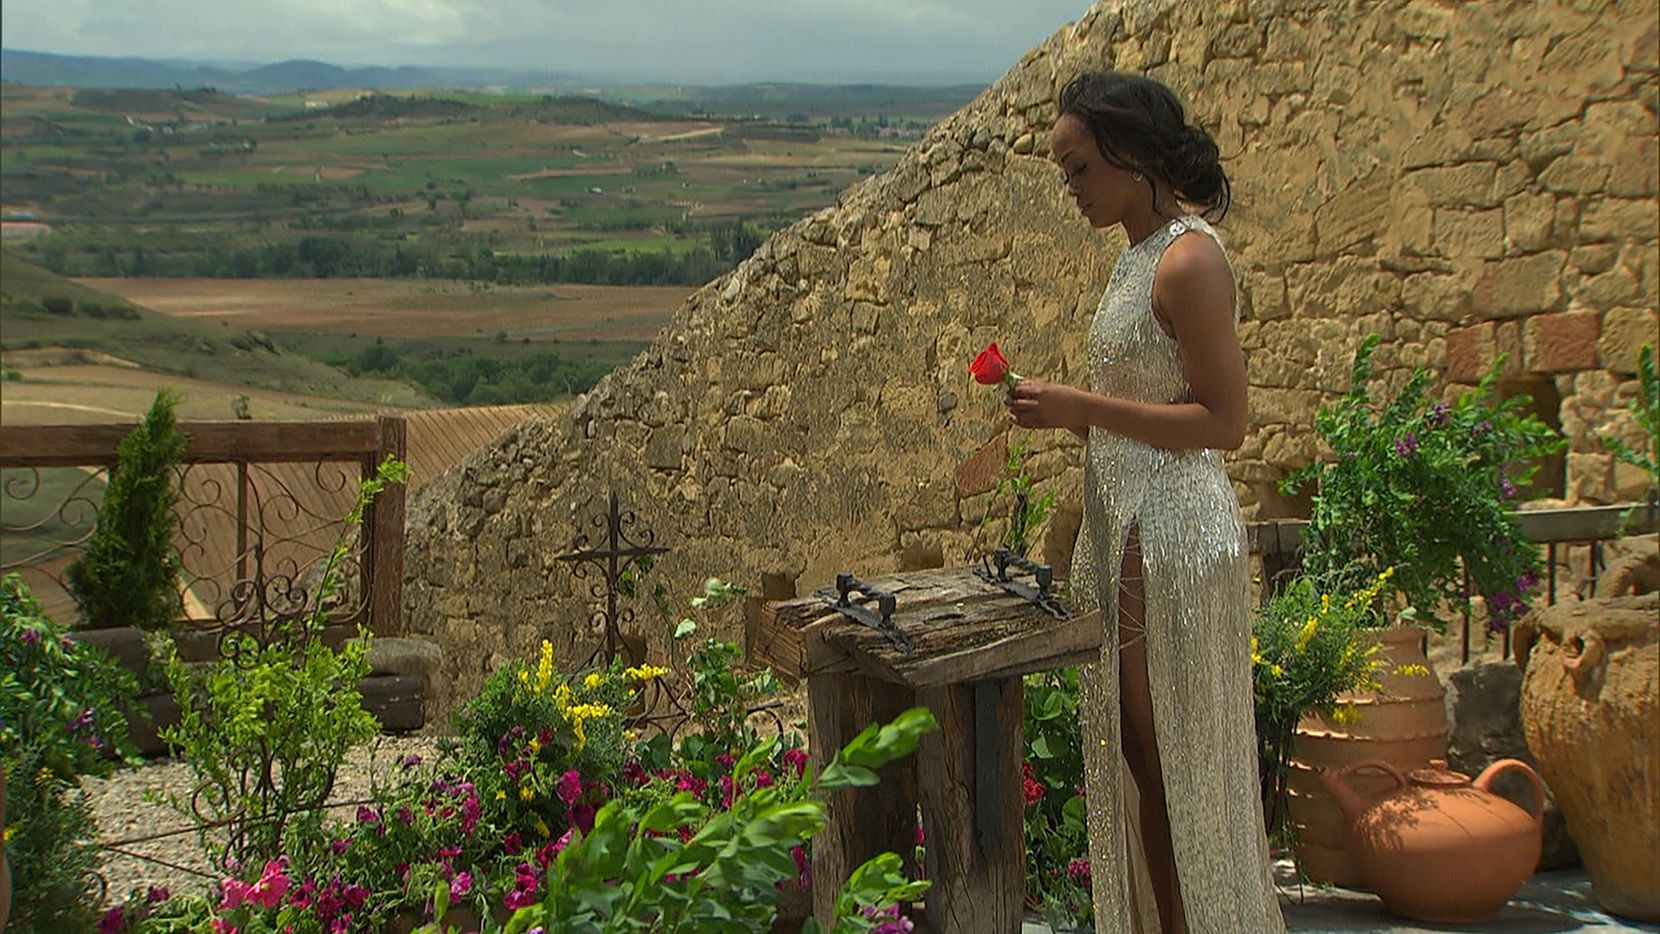 """Dallas lawyer Rachel Lindsay concludes her reality TV journey to find a man on """"The Bachelorette"""" Aug. 7 at 7 p.m. Read on to find out who the winner is ahead of the finale."""